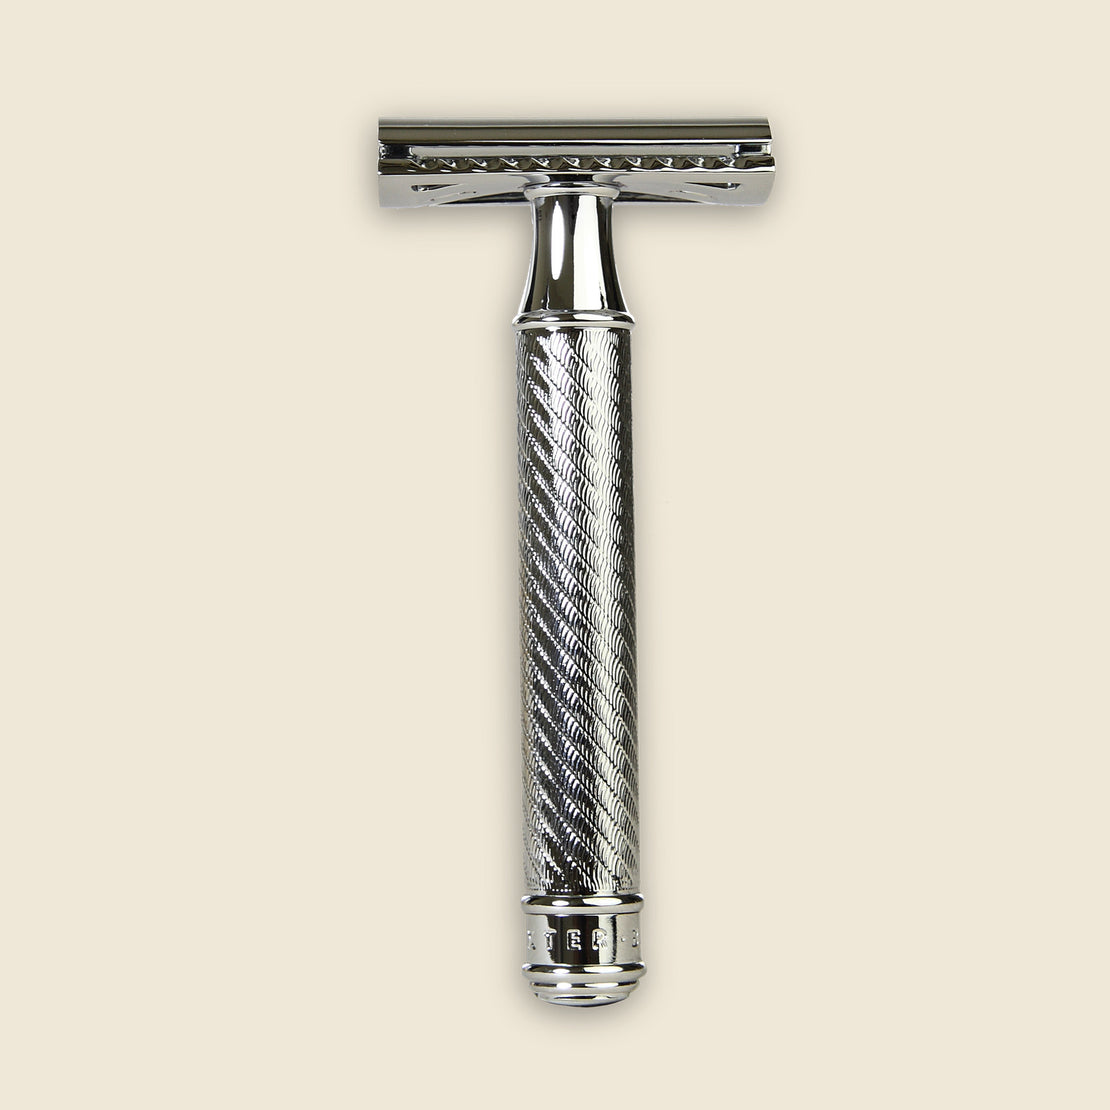 Baxter Double Edge Safety Razor